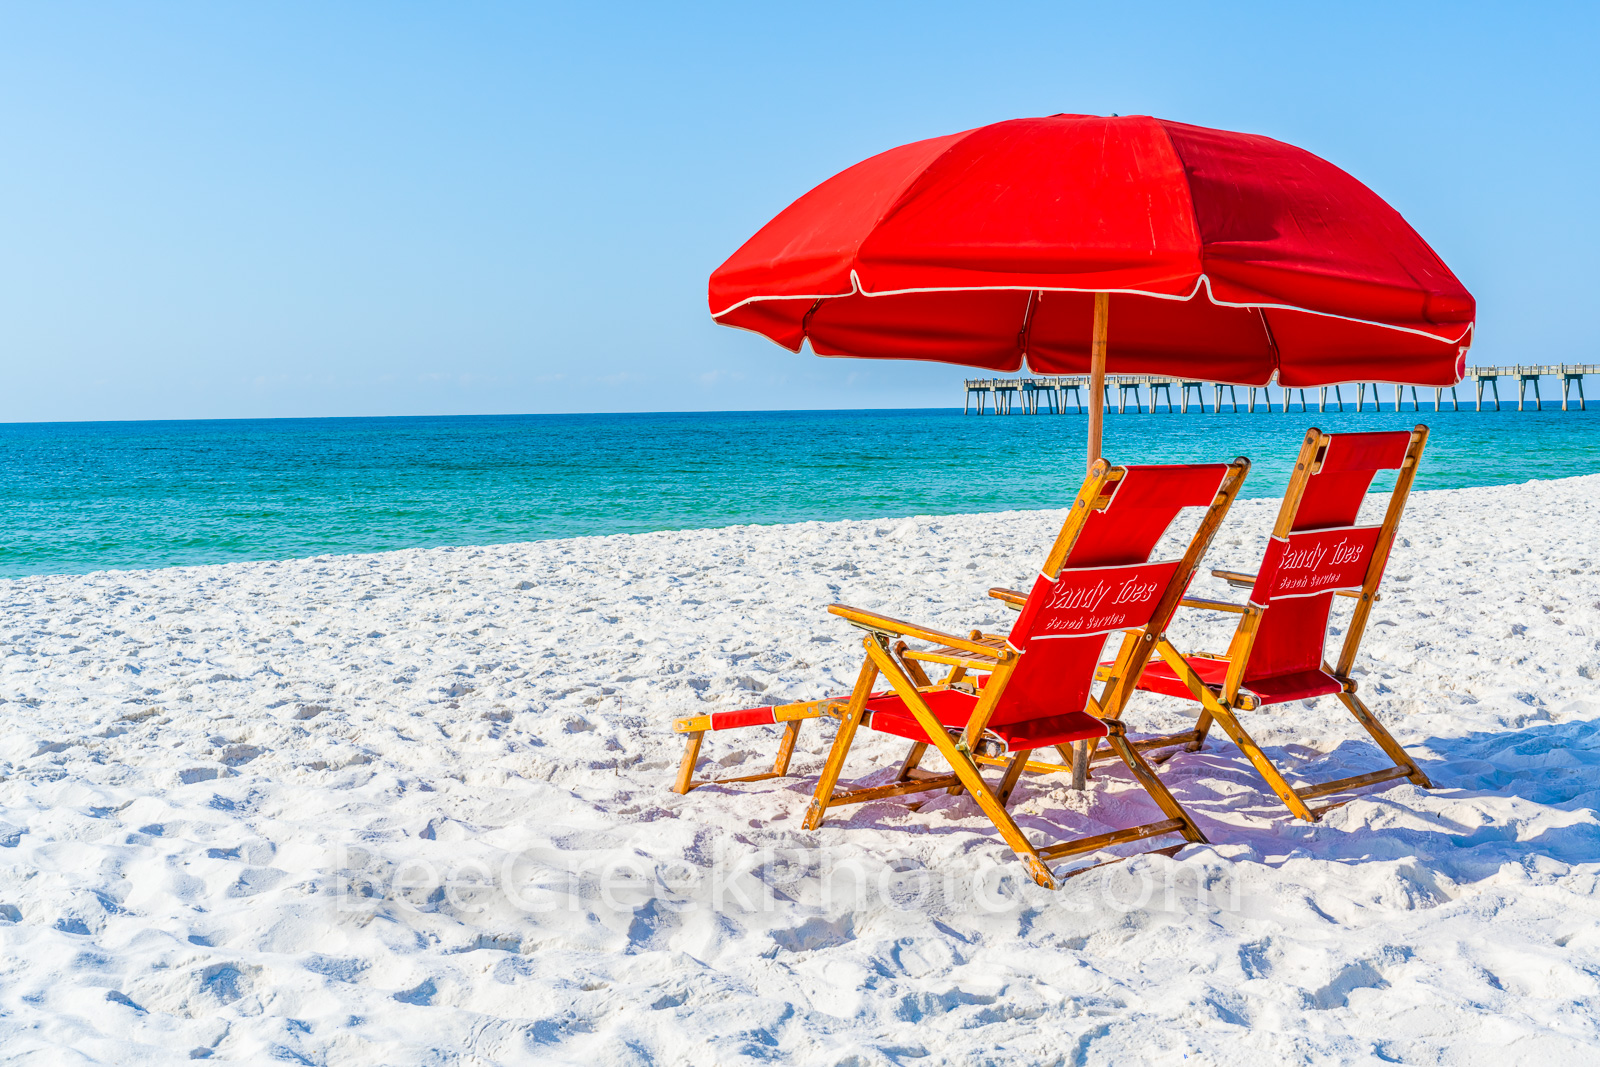 Red Umbrella on the Beach - Daydreaming on Pensacola beach Florida with this beautiful white sand and emerald green waters under...